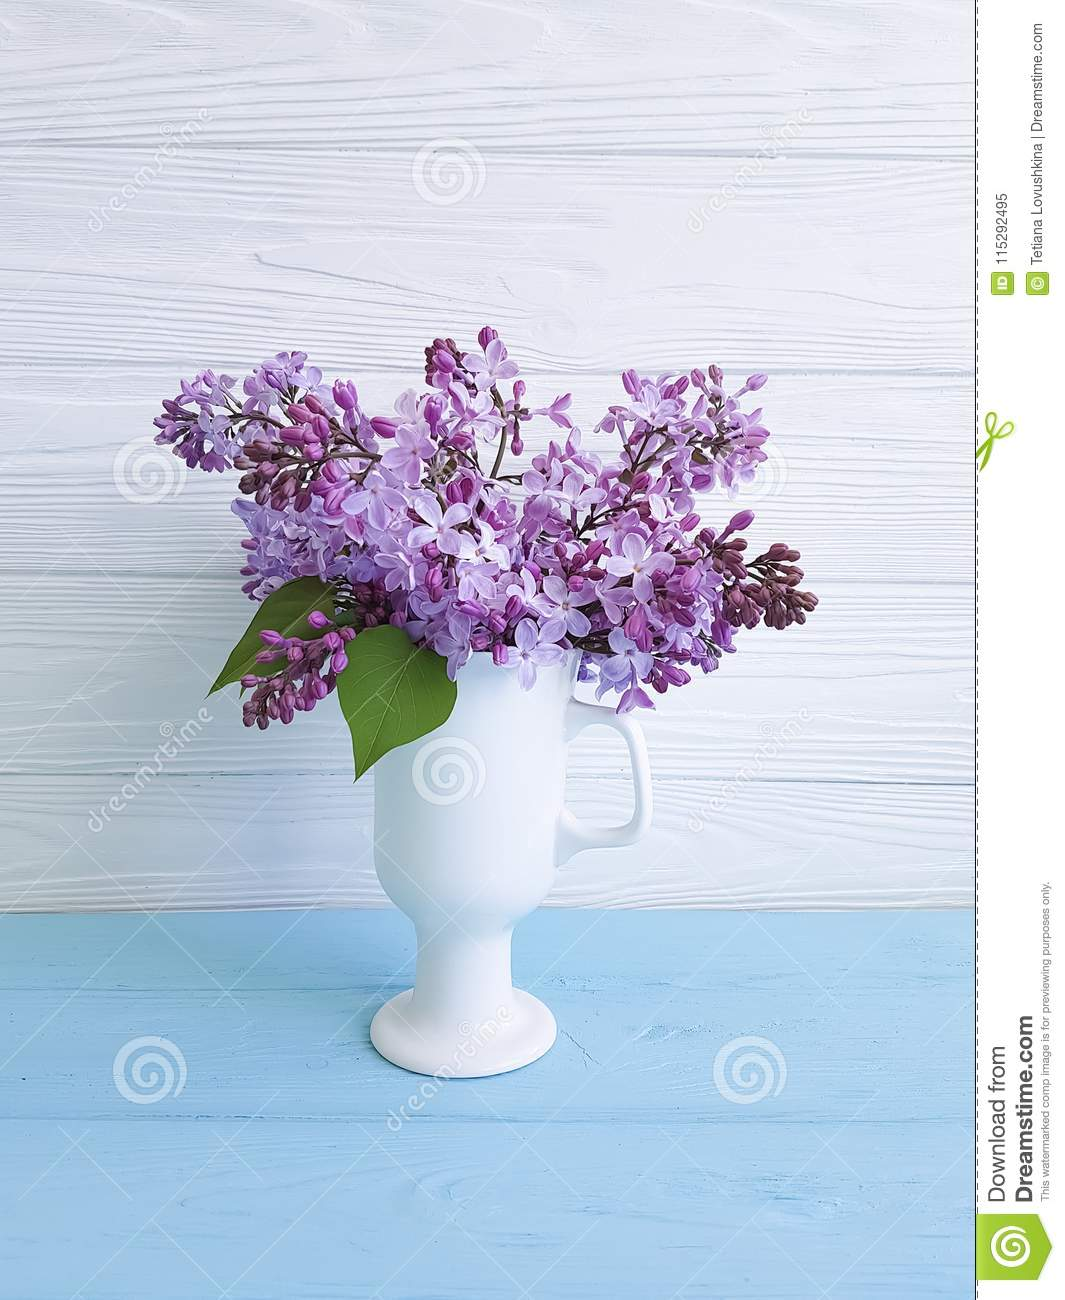 Bouquet of lilac in a vase on a wooden